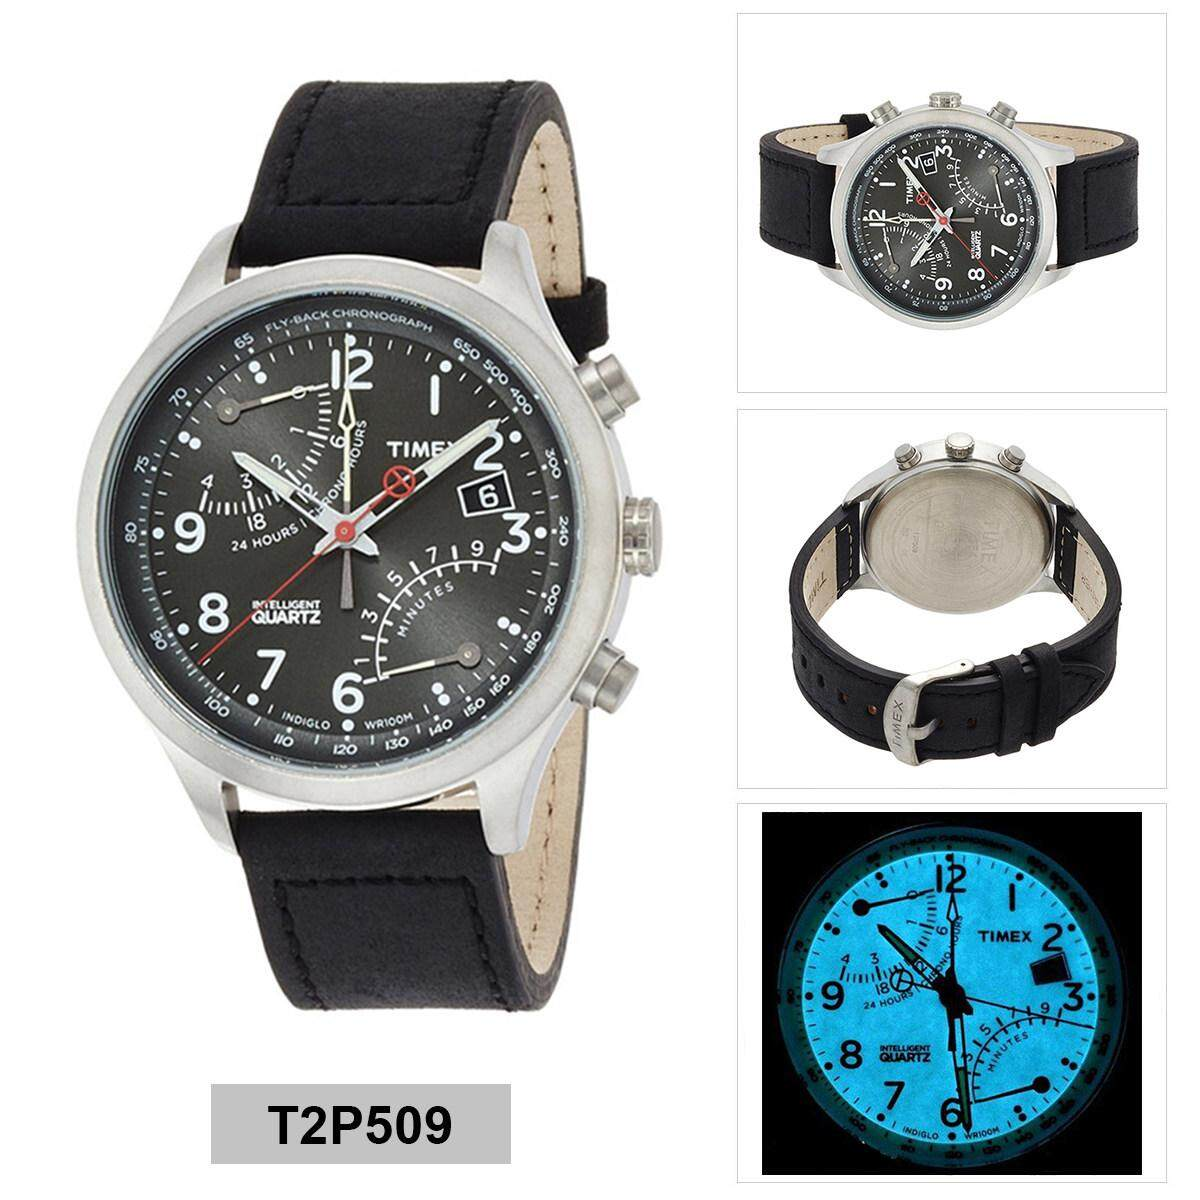 Timex Watches Price In Malaysia Best Lazada Weekender Fairfield Chronograph Tw2r37800 Original Intelligent Black Stainless Steel Case Leather Strap Mens T2p509